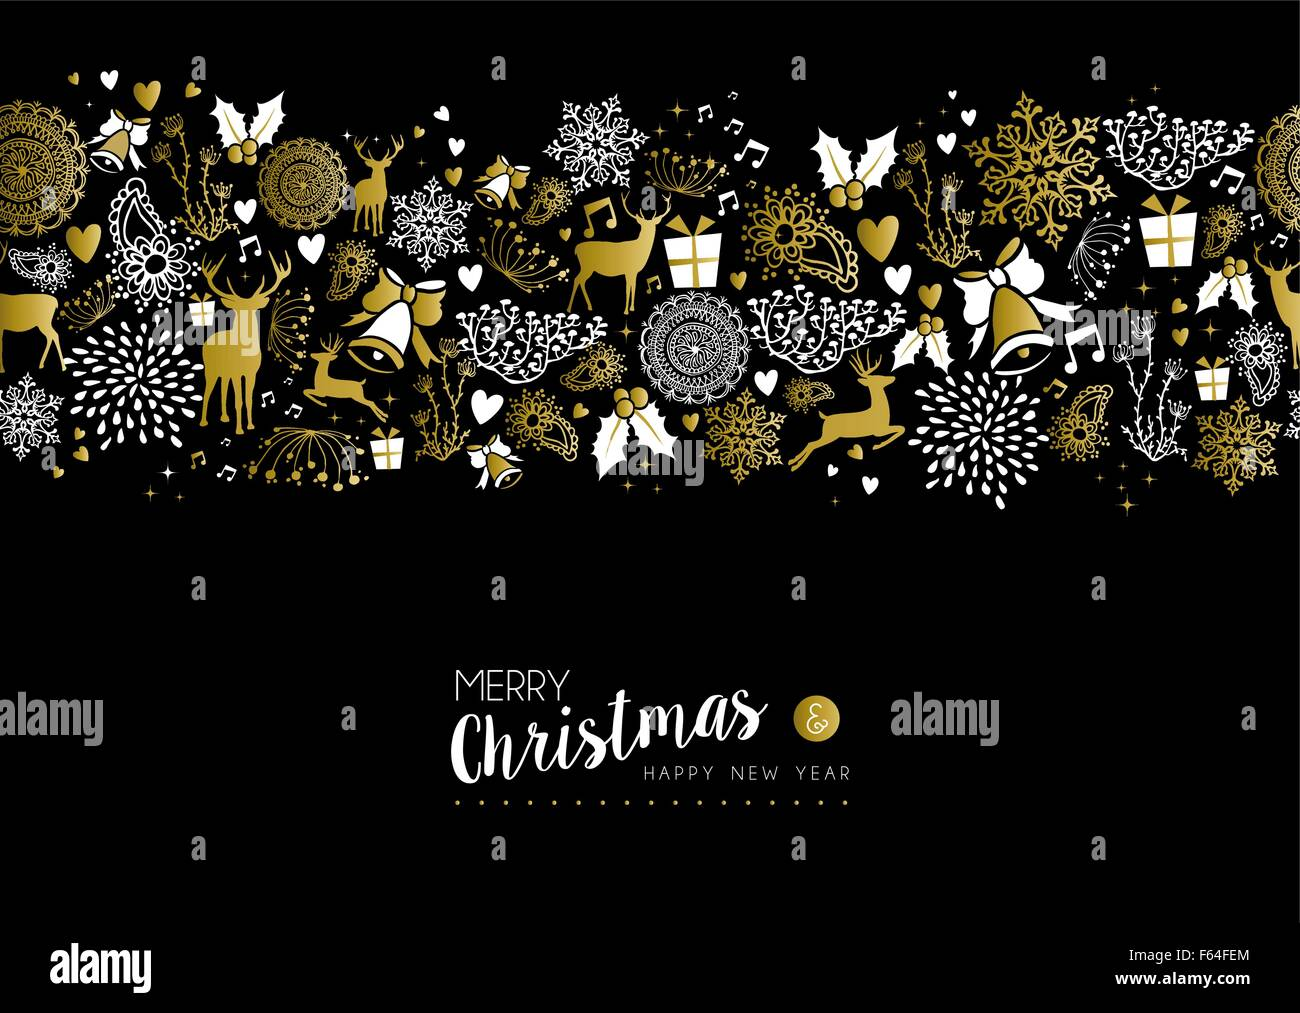 Merry Christmas Happy New Year Luxury Gold Seamless Pattern On Black Background With Deer Nature And Holiday Elements